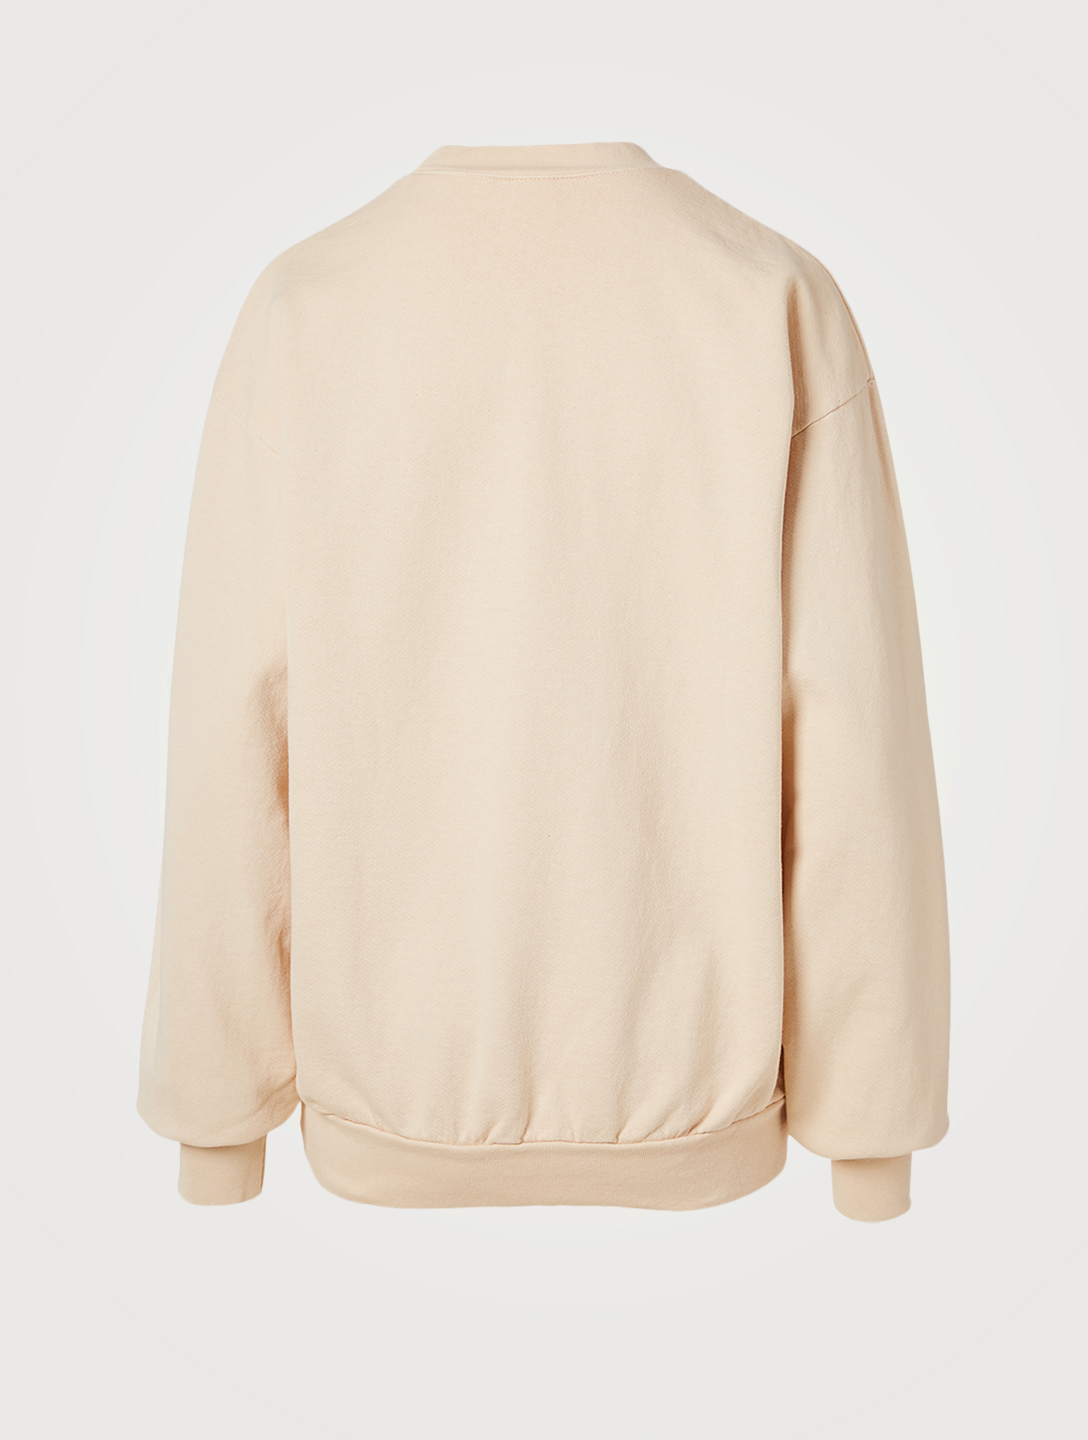 SPORTY & RICH Wellness Oversized Sweatshirt Women's Beige